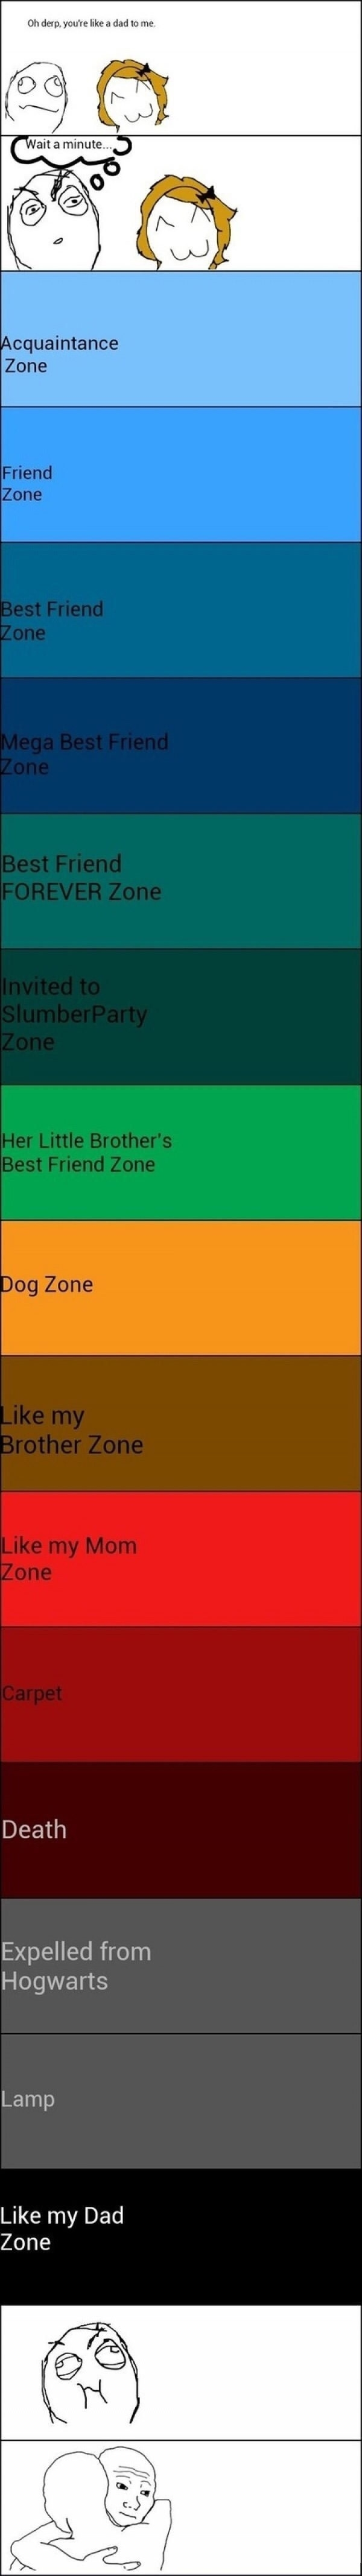 Different zone levels